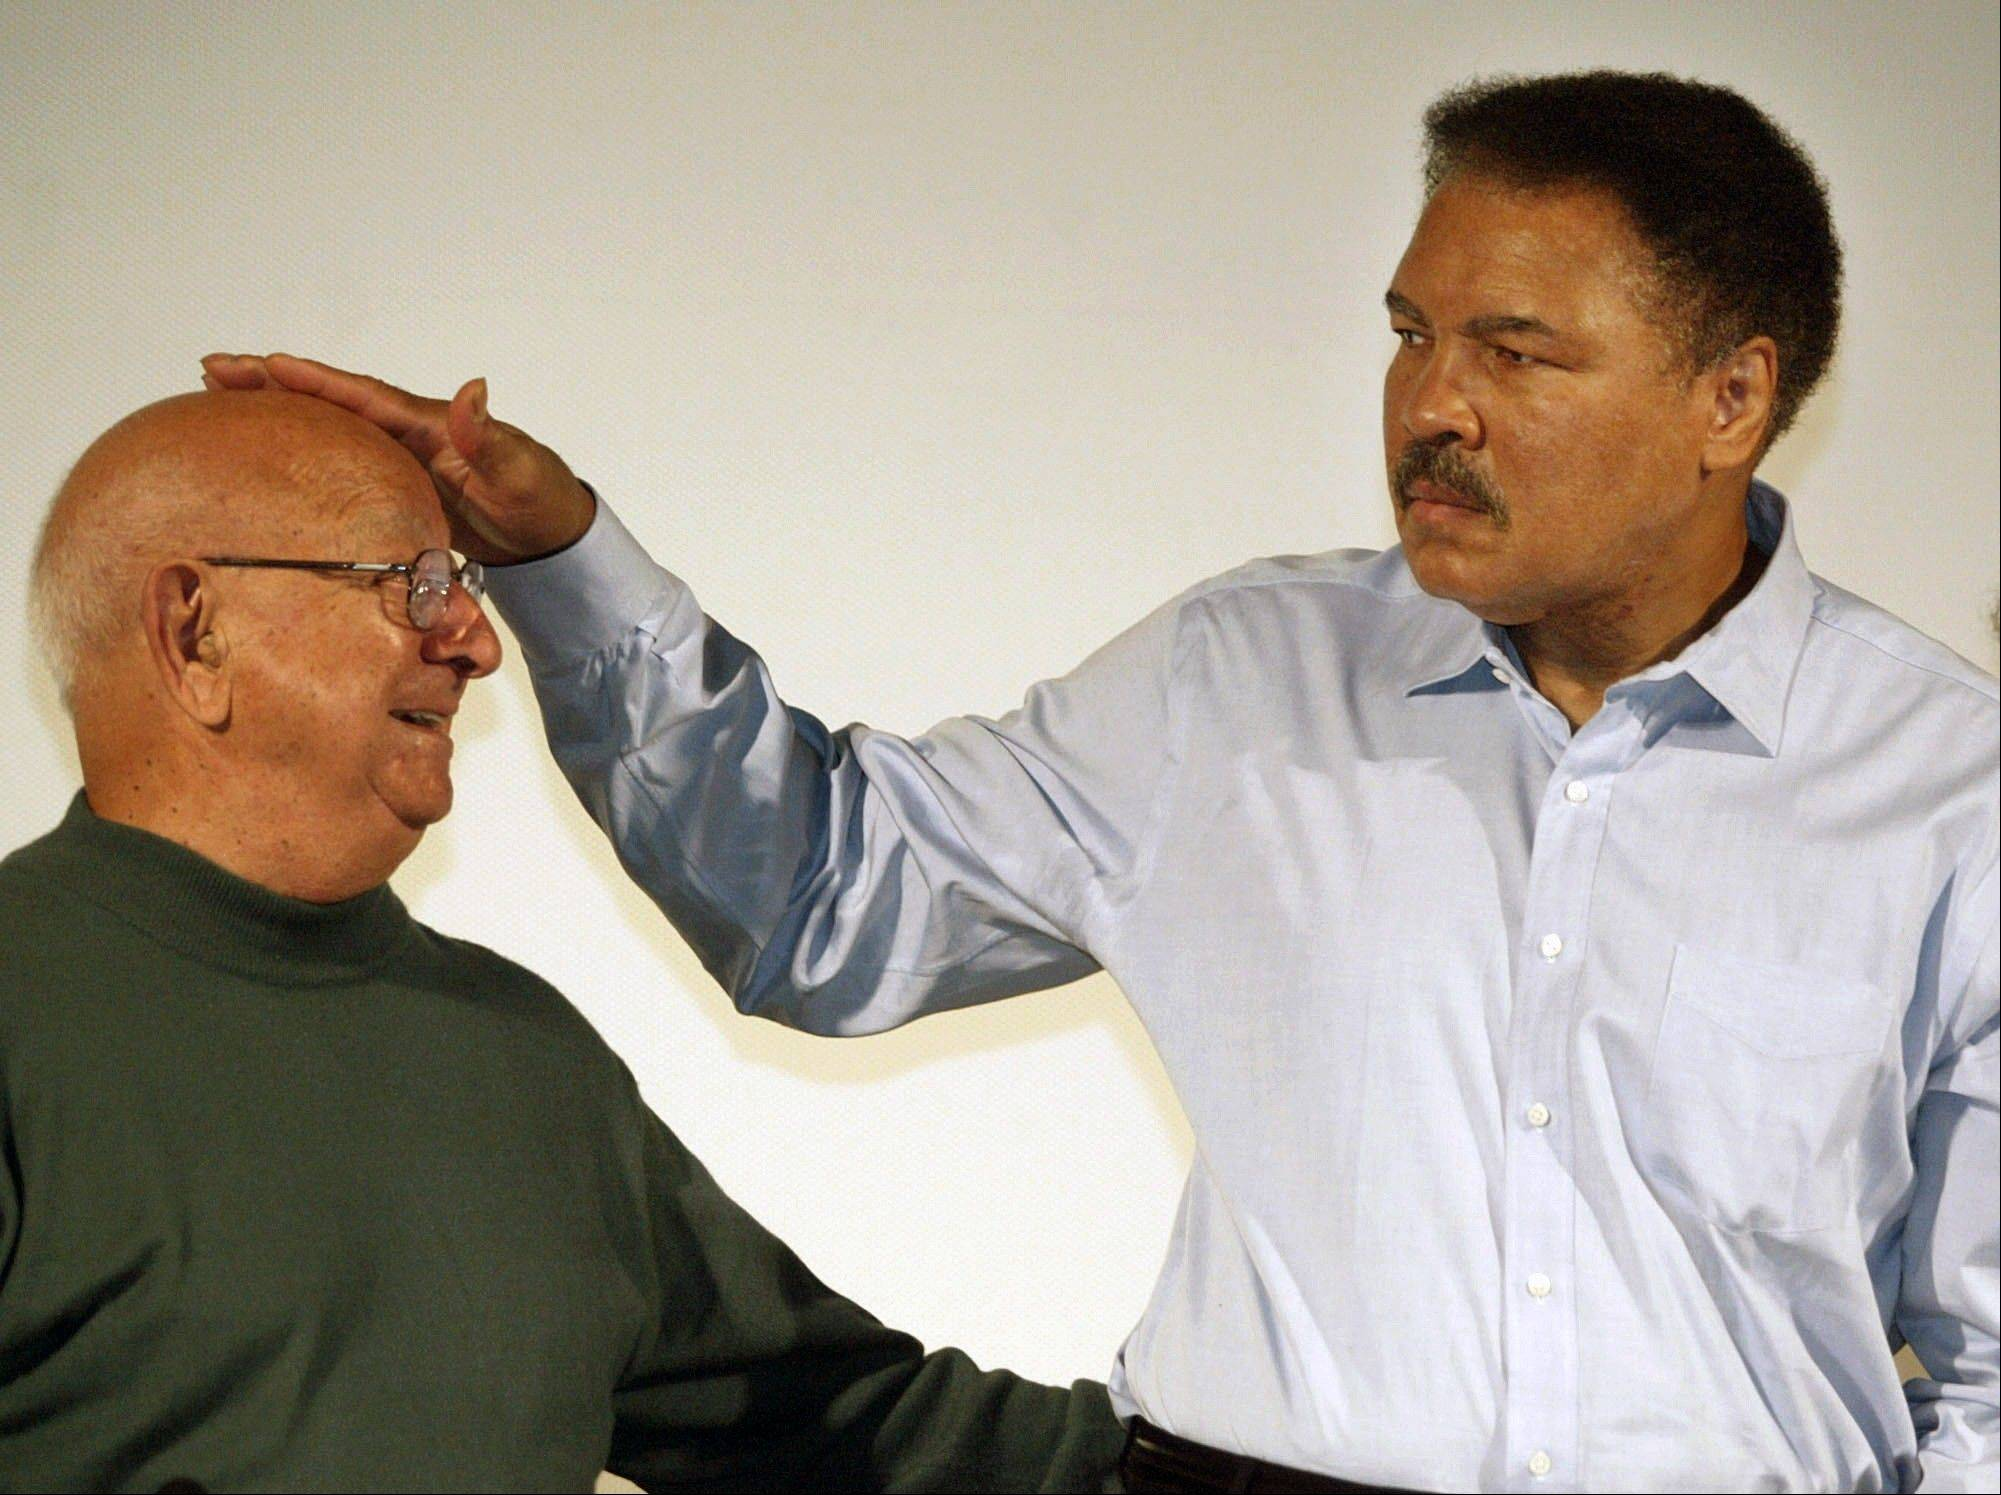 Boxing great Muhammad Ali touches the head of former coach Angelo Dundee at the Book Fair in Frankfurt, Germany, in 2003. Dundee, who helped groom Ali and Sugar Ray Leonard into world champions and became one of boxing's most recognizable figures, died Wednesday.